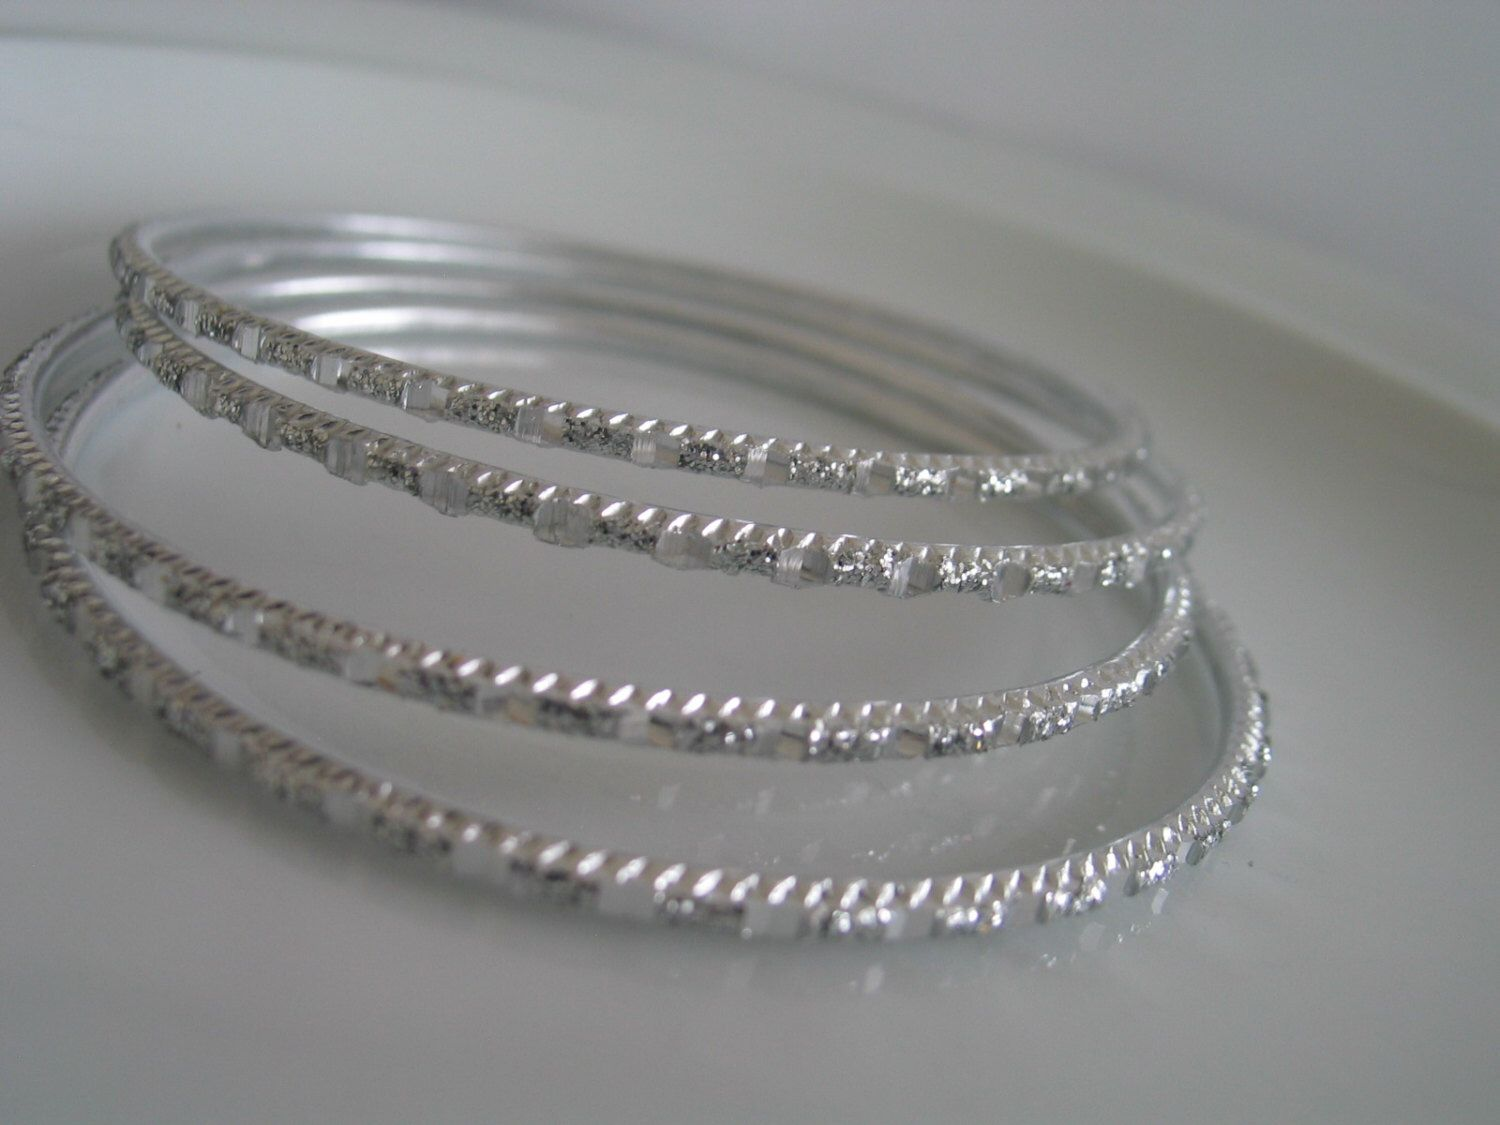 Silver tone bangles - silver tone bracelets - bangle supplies - bracelet supplies - bangles for jewelry - bangles for wire wrapping - indian by LeeliaDesigns on Etsy https://www.etsy.com/listing/178176761/silver-tone-bangles-silver-tone